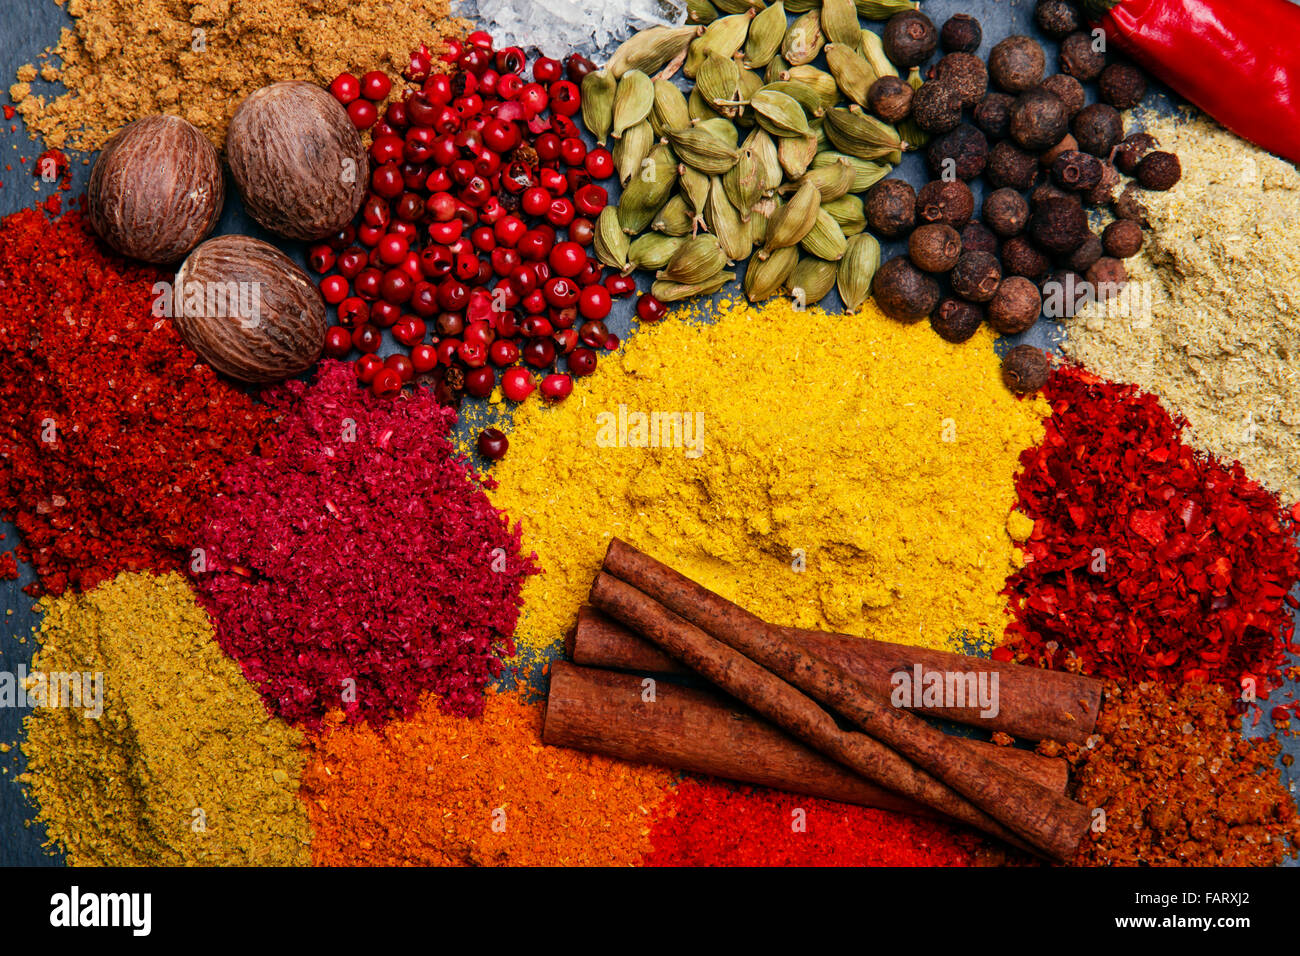 assortment of spices seasoning on a black stone - Stock Image